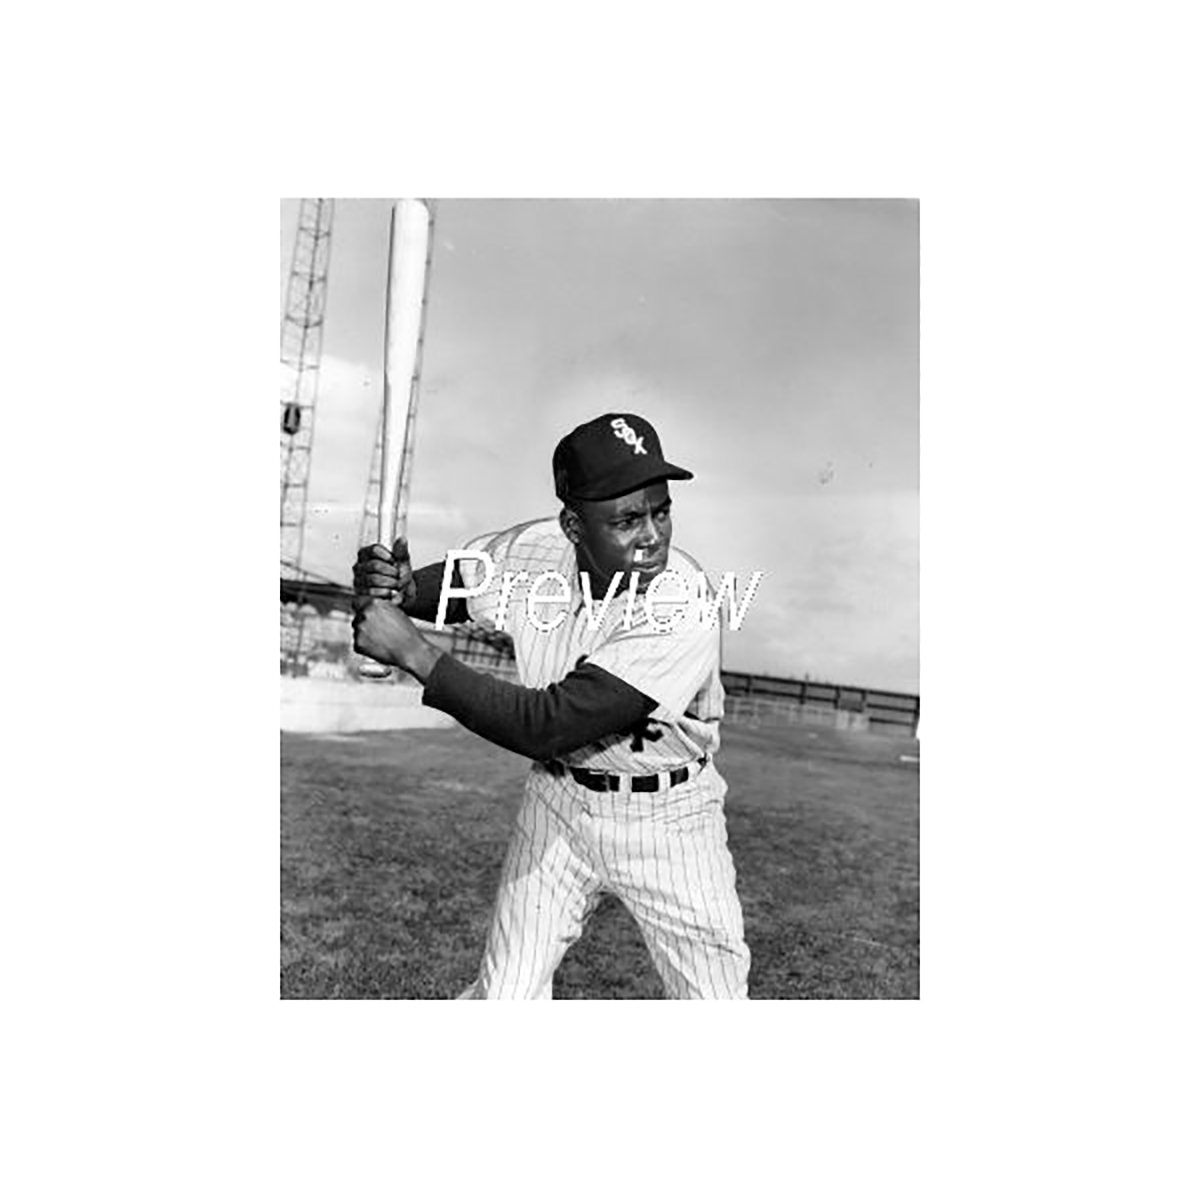 Minnie Minoso Tribute: 1955 At-Bat Pose Photograph